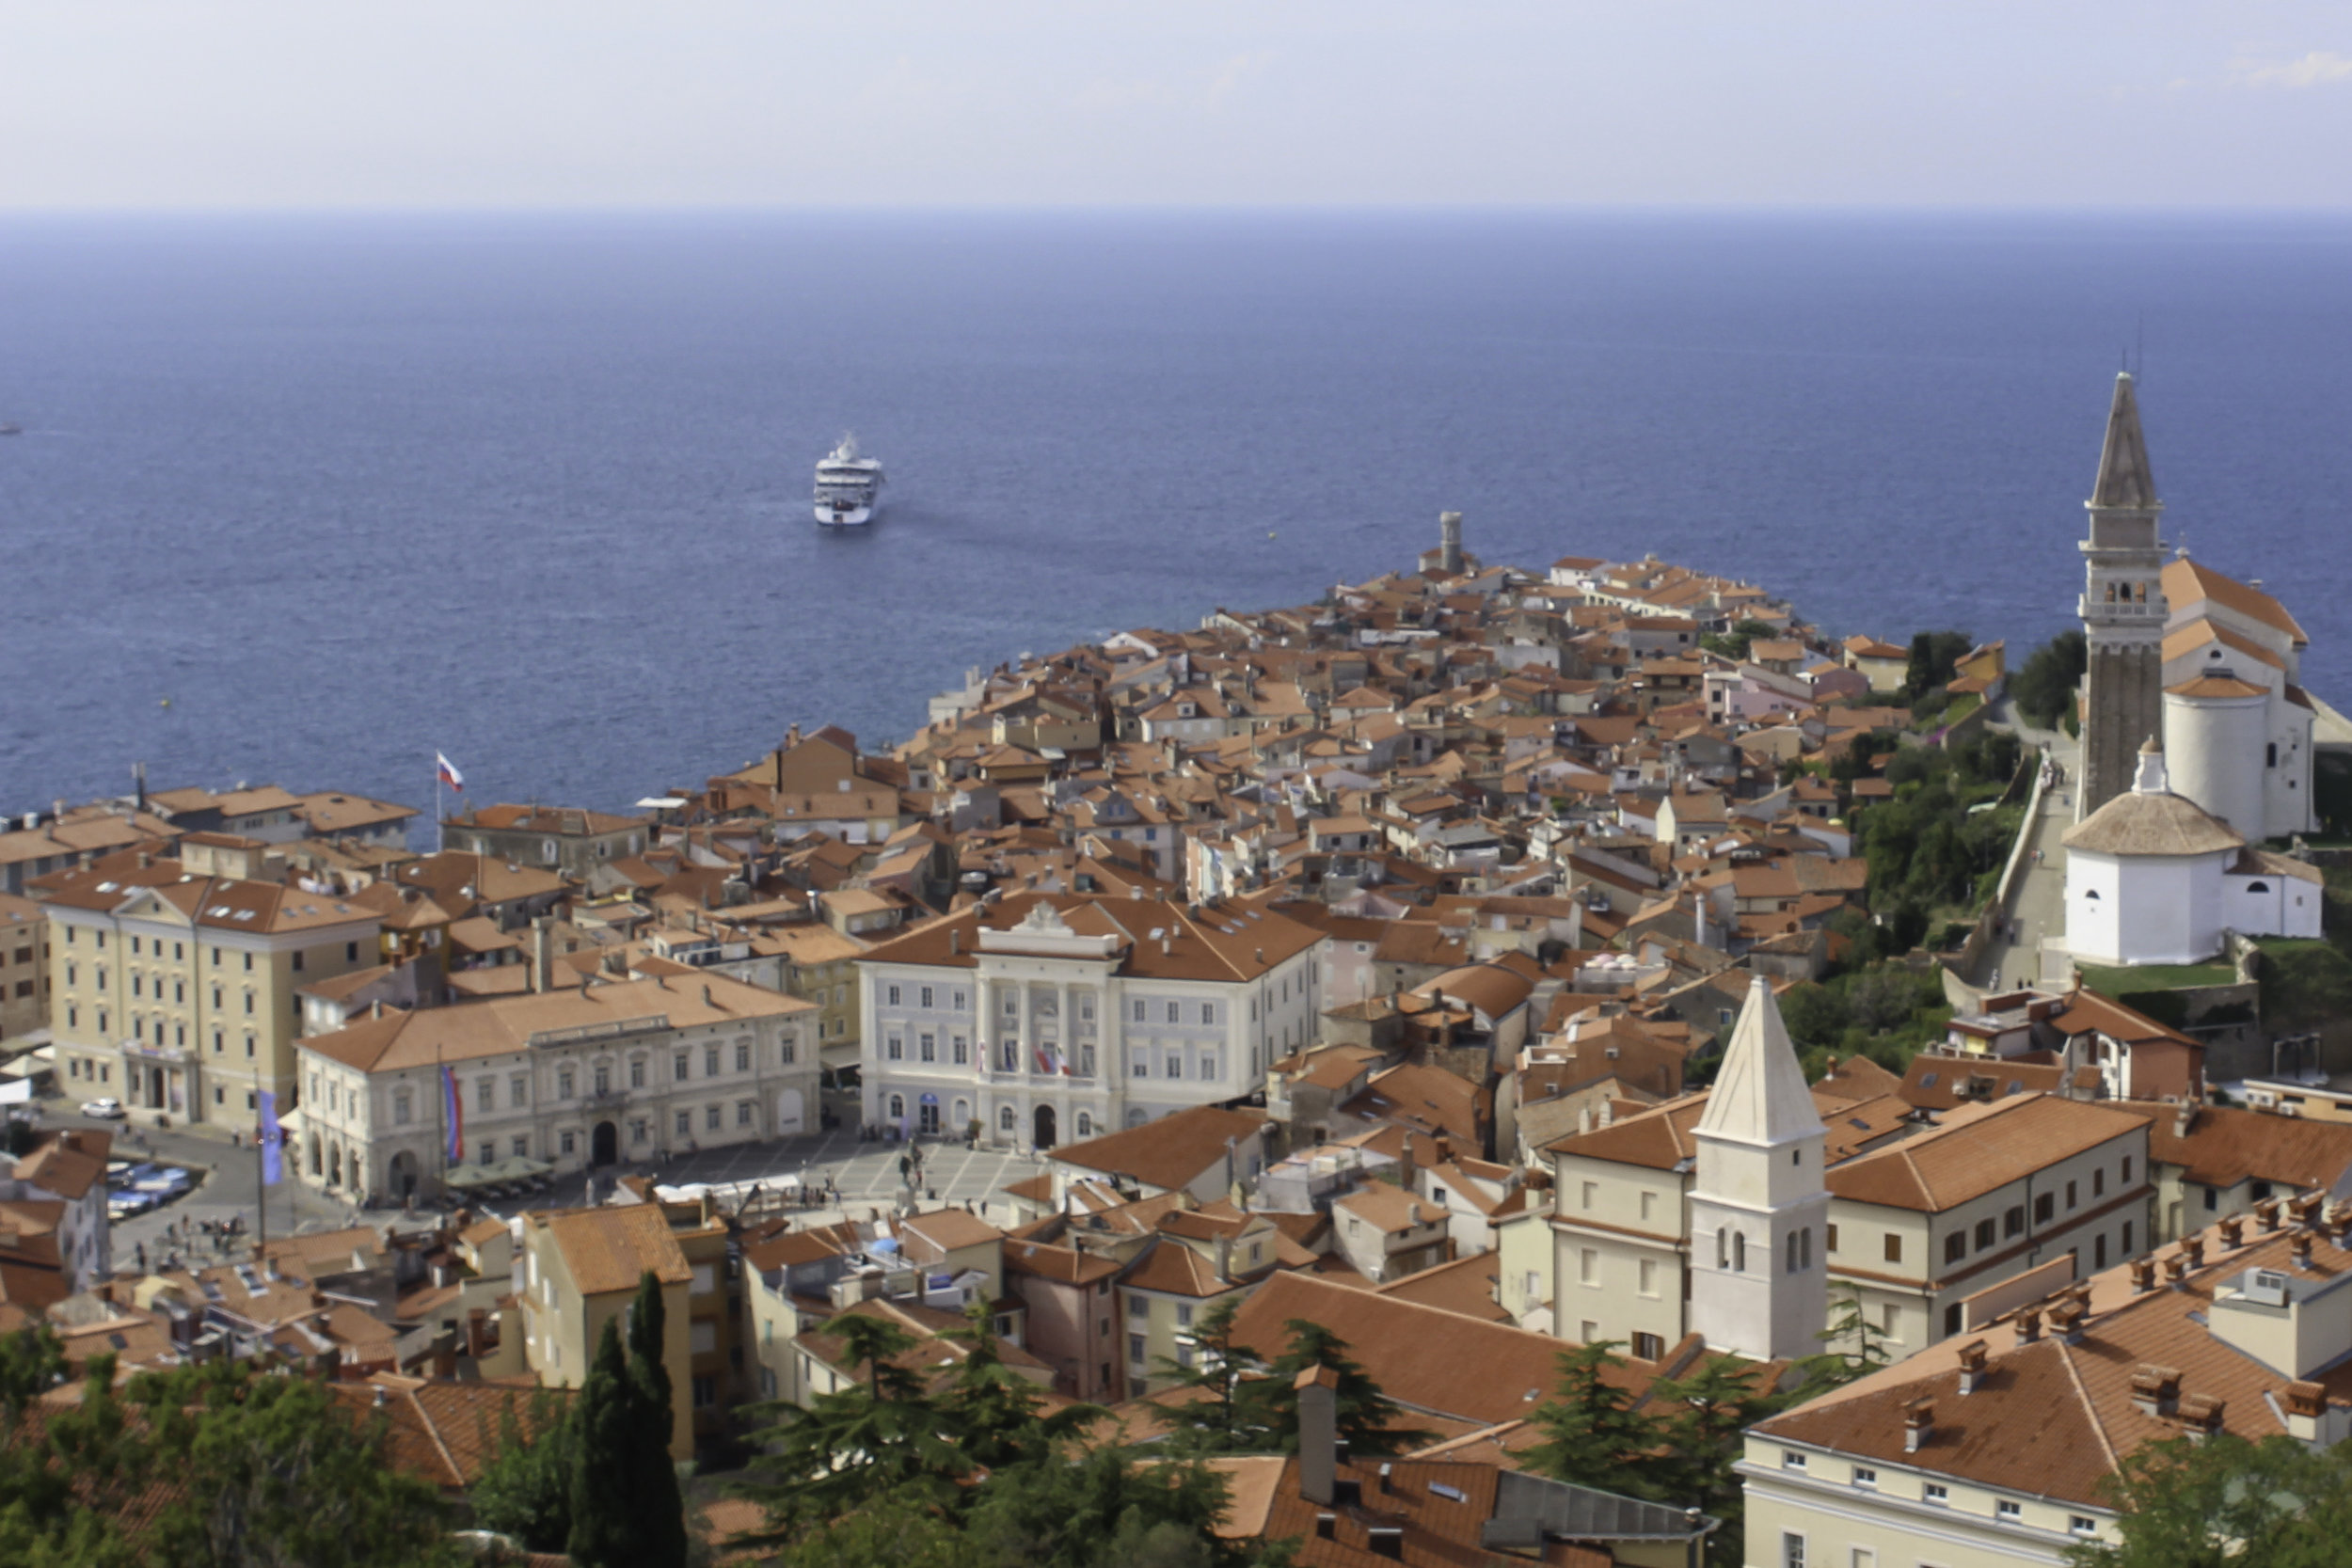 The view of Piran and the Adriatic from atop the old fort walls.